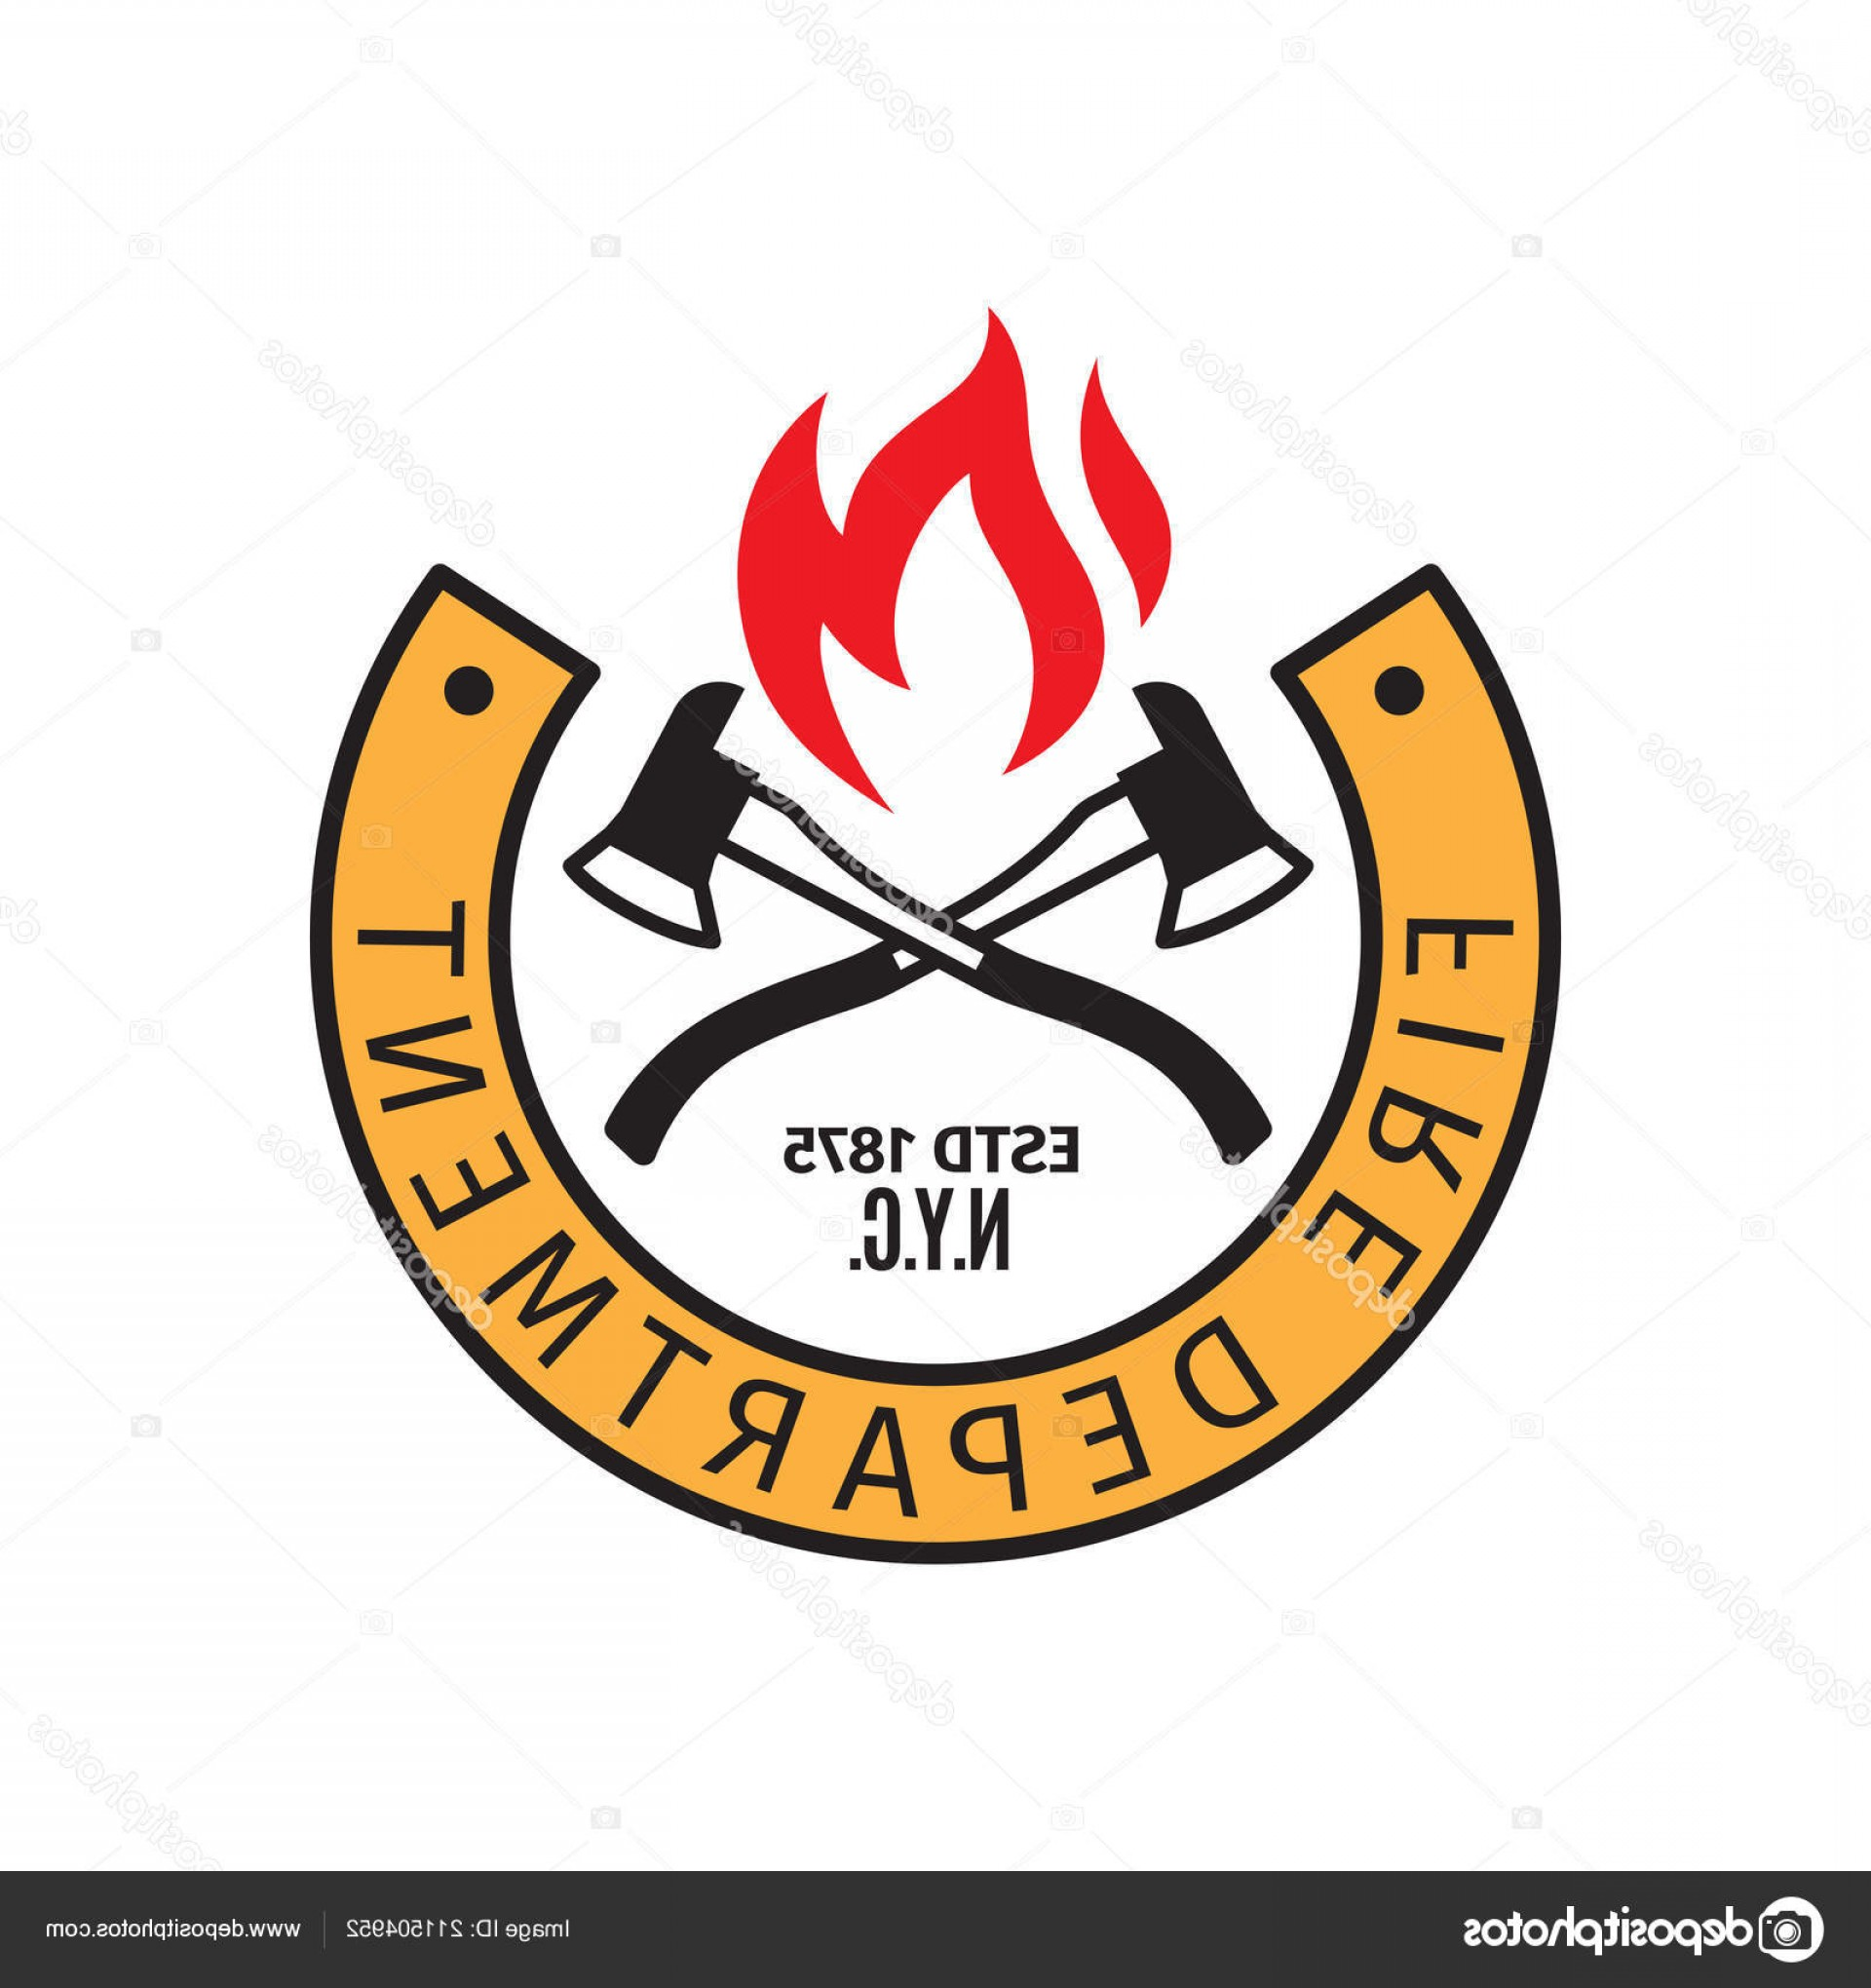 Fire Dept Emblem Vector: Stock Illustration Fire Department Badge With Axes